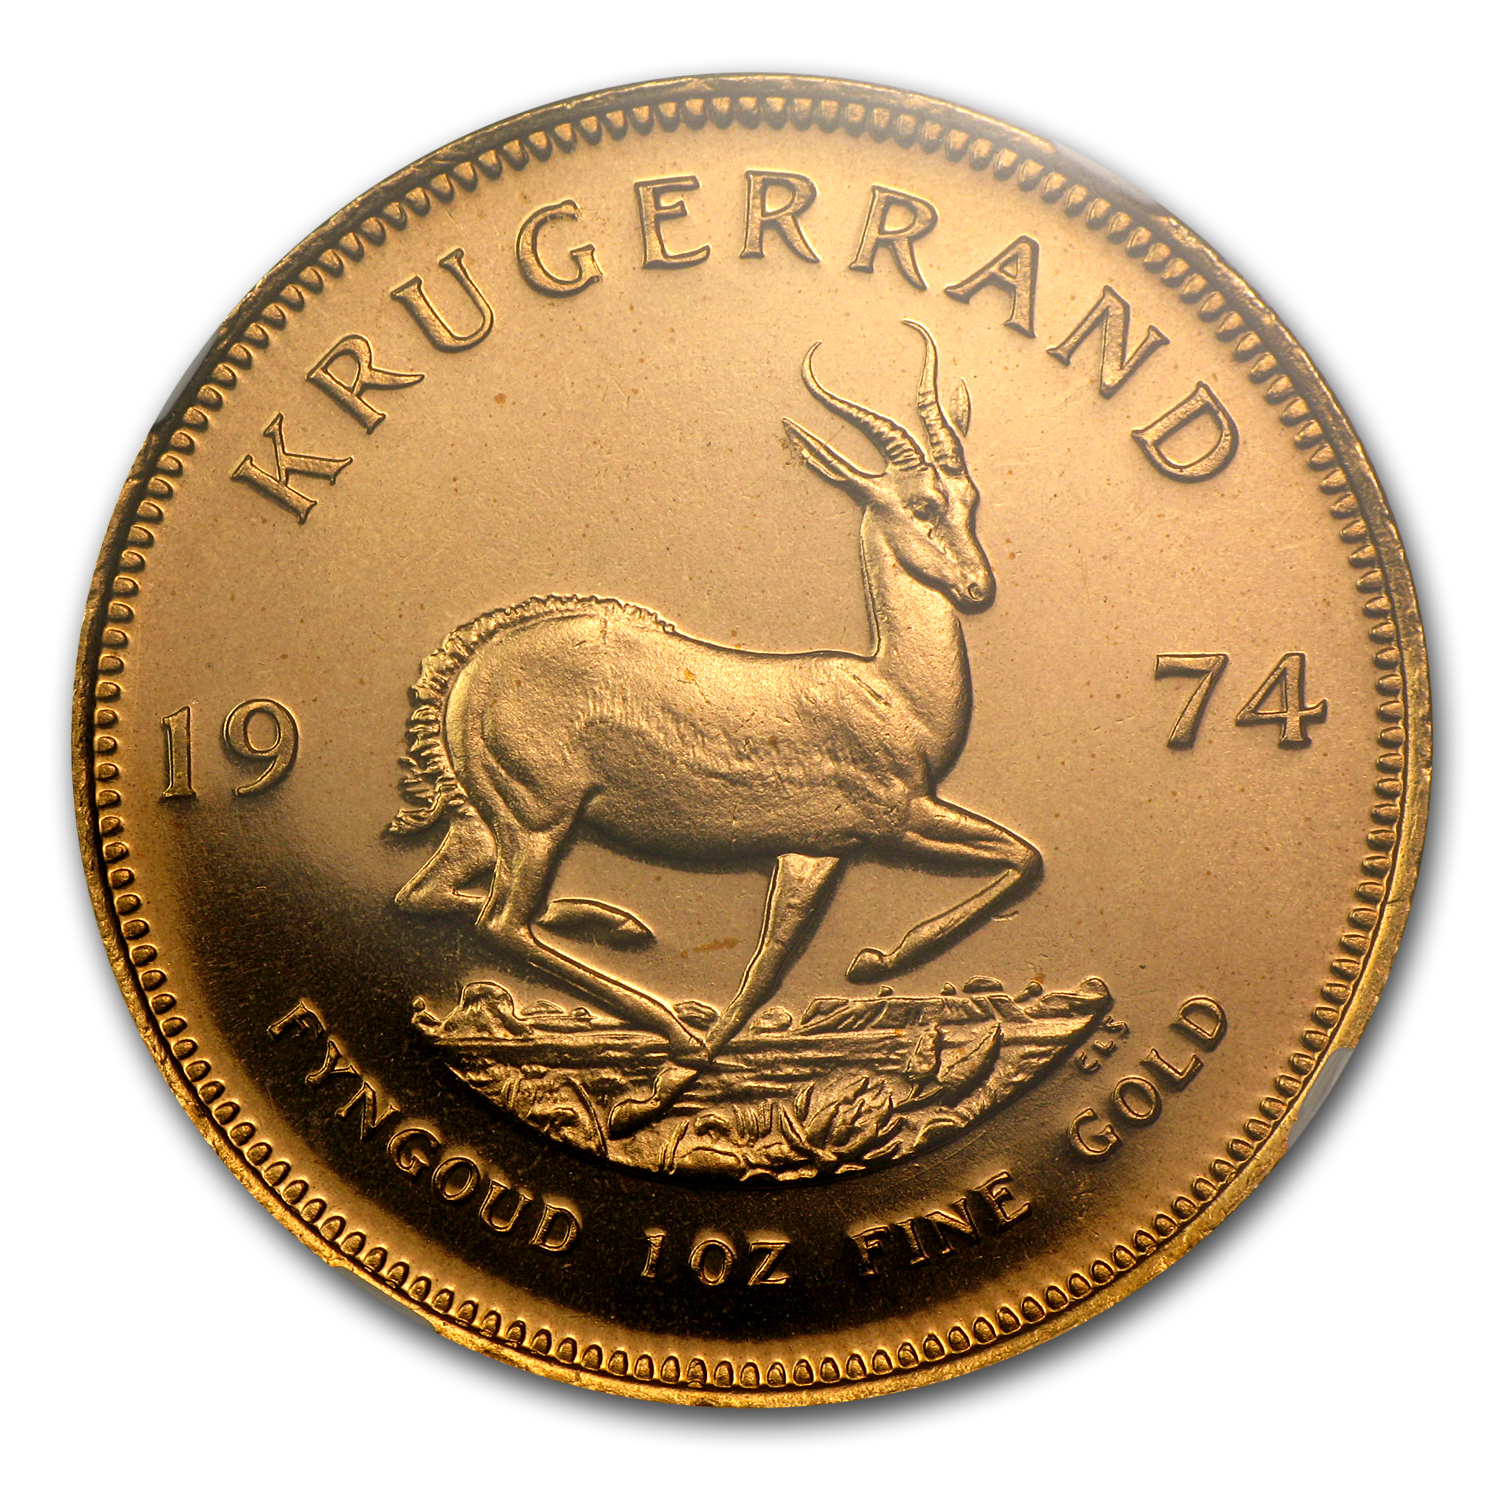 1974 1 oz Gold South African Krugerrand PF-68 UCAM NGC